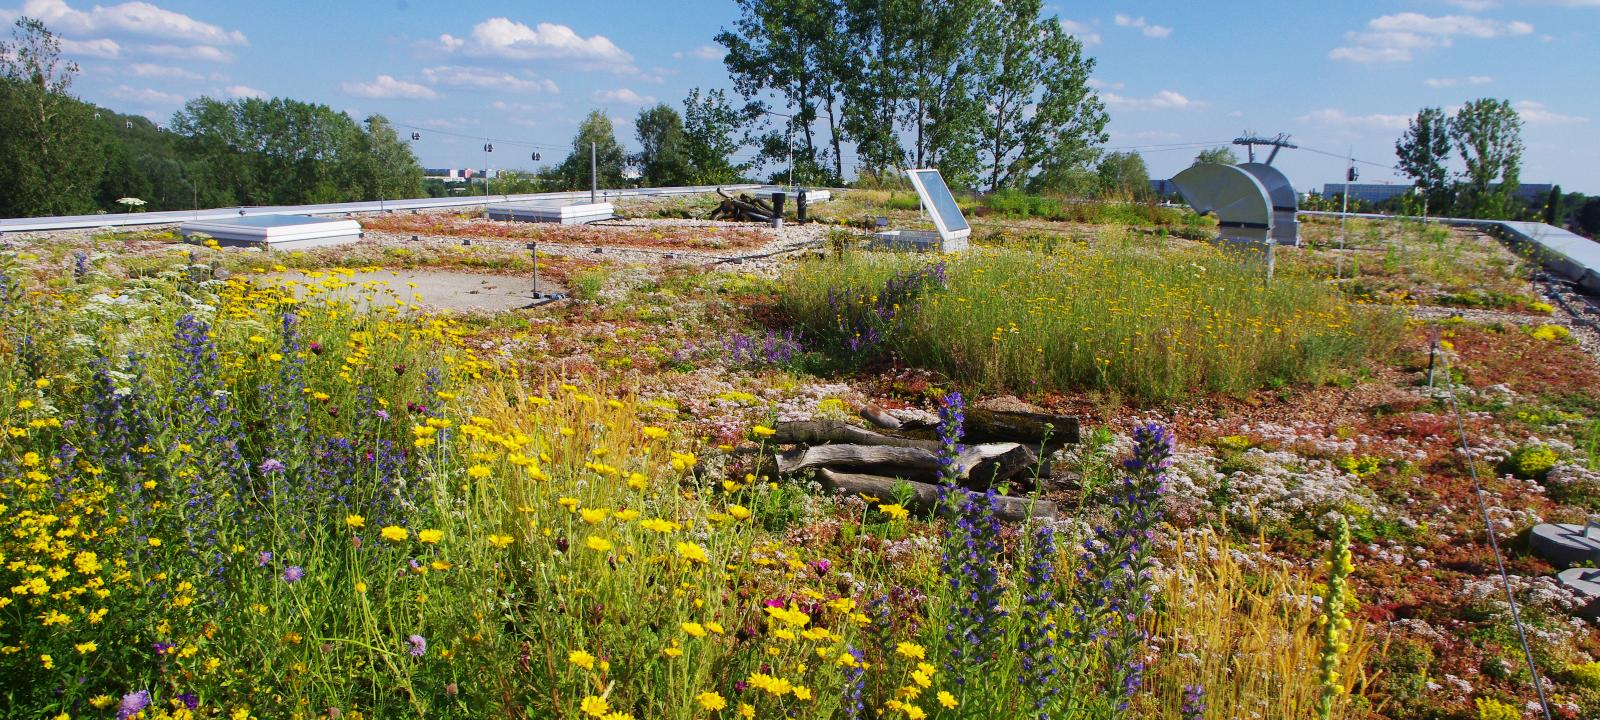 Green roof with meadow flowers, herbs and Sedum